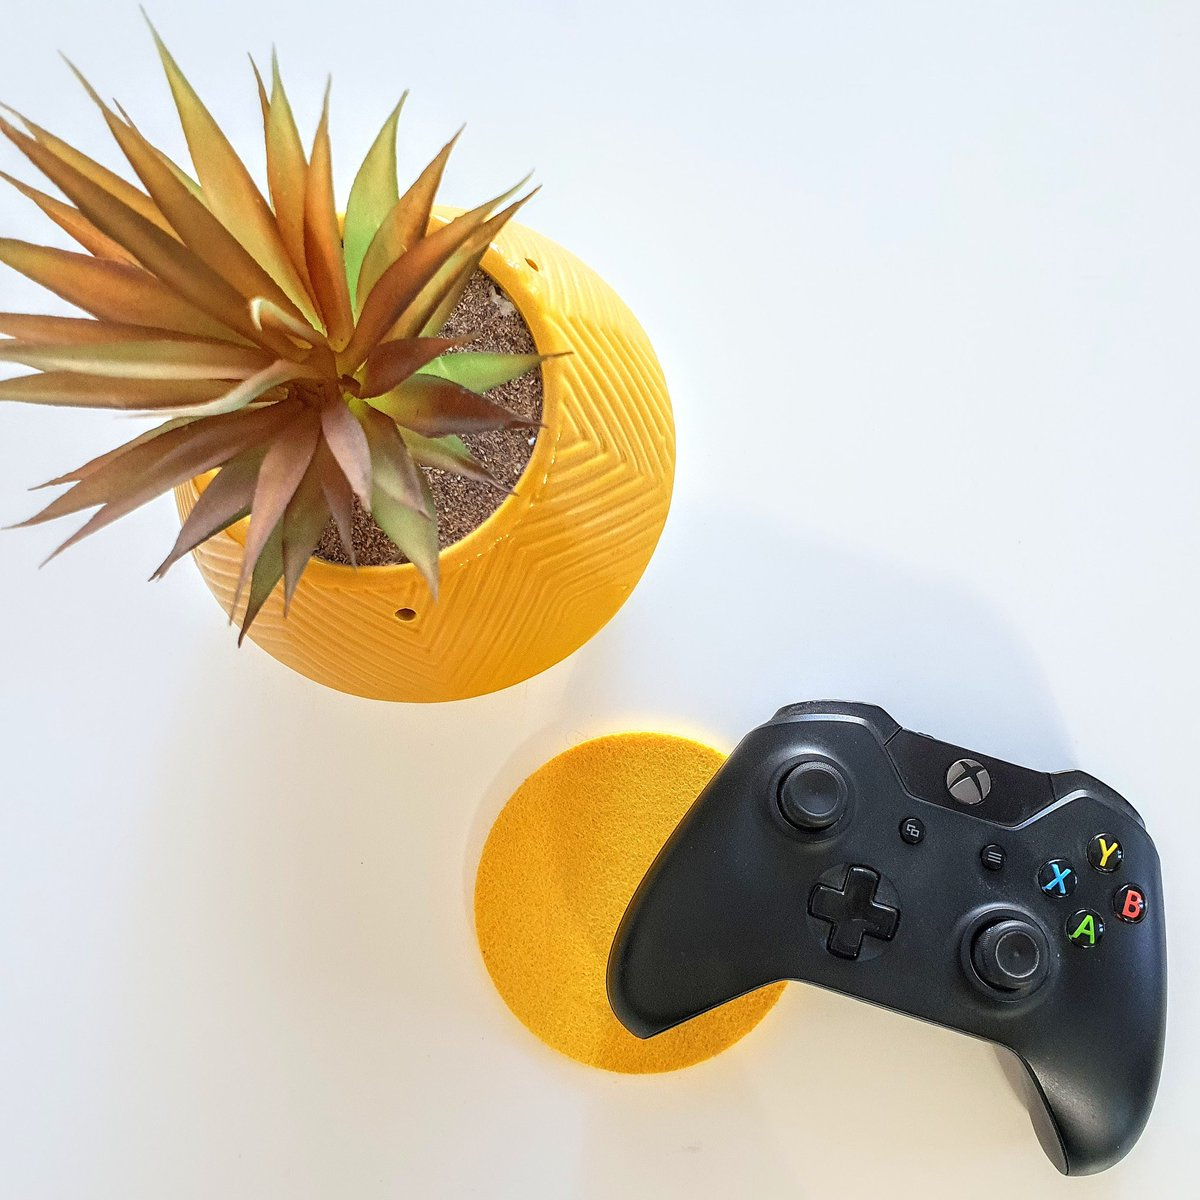 What are your favourite #Xbox games?   Creative Coconut Games YouTube Channel 🌴🥥   #xbox #game #games #yellow #white #control #controller #bristol #couplegoals #favourite #husbandandwife #sunday #lazysunday #gameday #picture #picoftheday